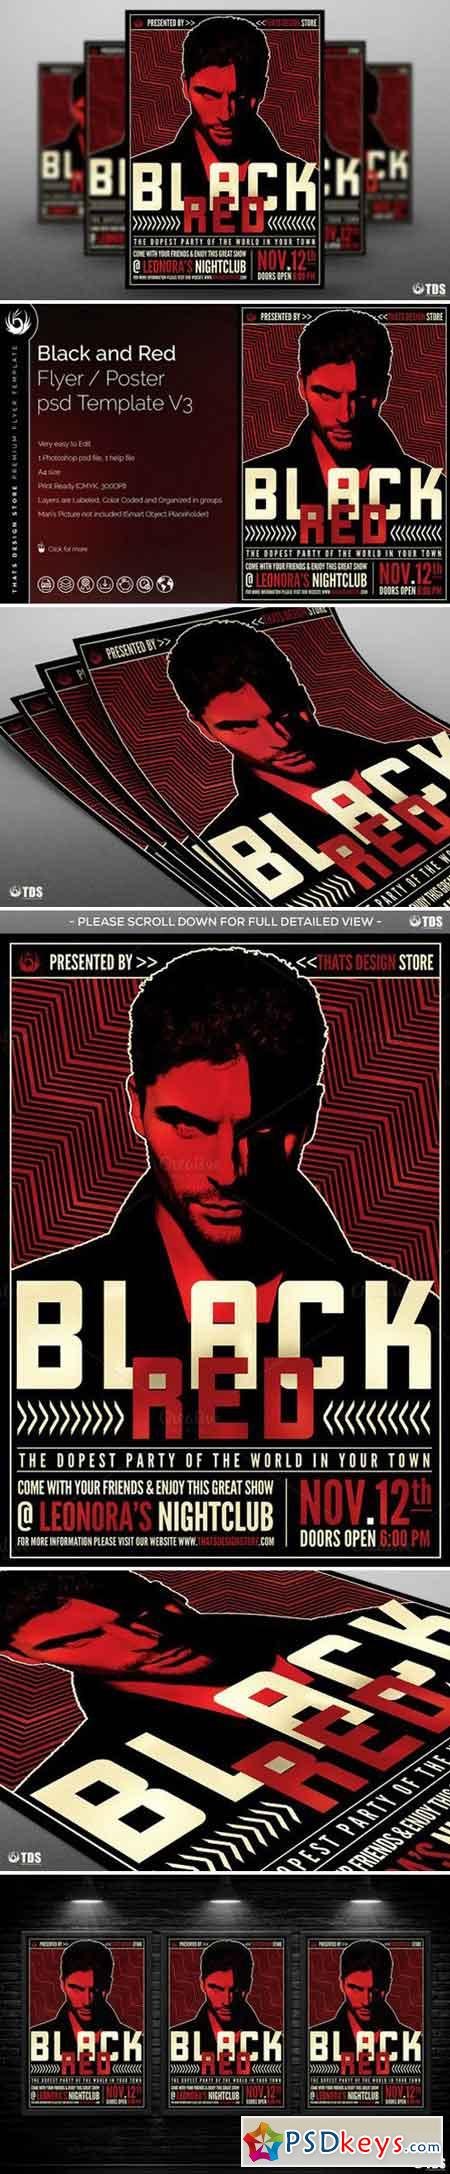 Black and Red Flyer Template V3 745016